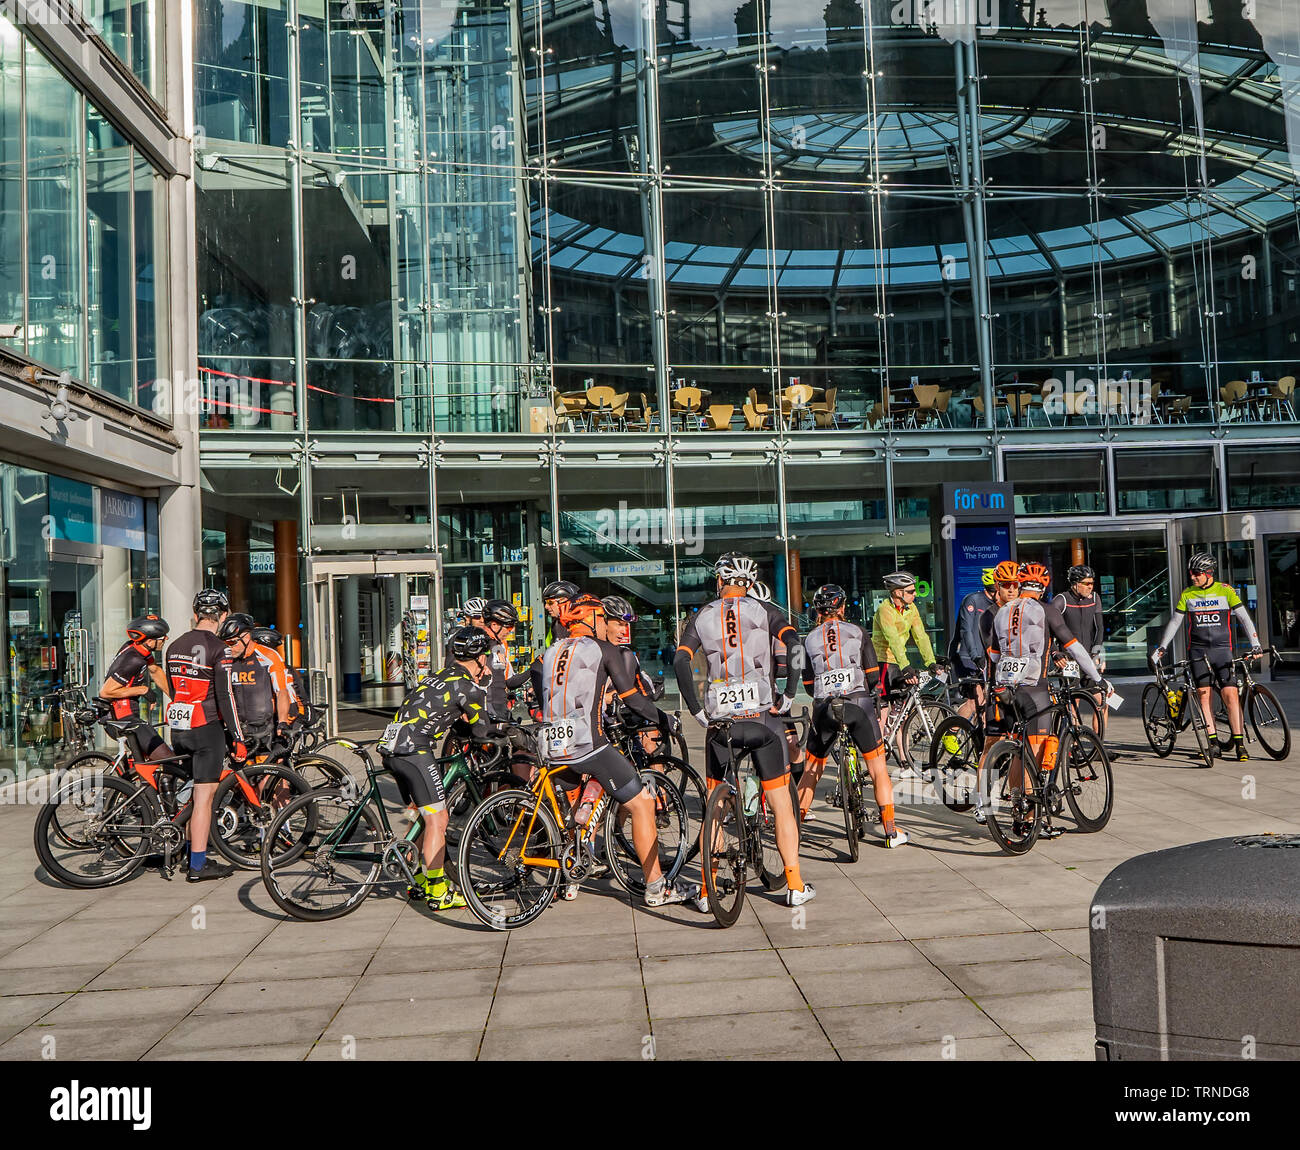 June 2019, Norwich 100 bike ride: Bike club members outside the front of the Forum waiting to be called up to the start gate to embark on the one hund - Stock Image